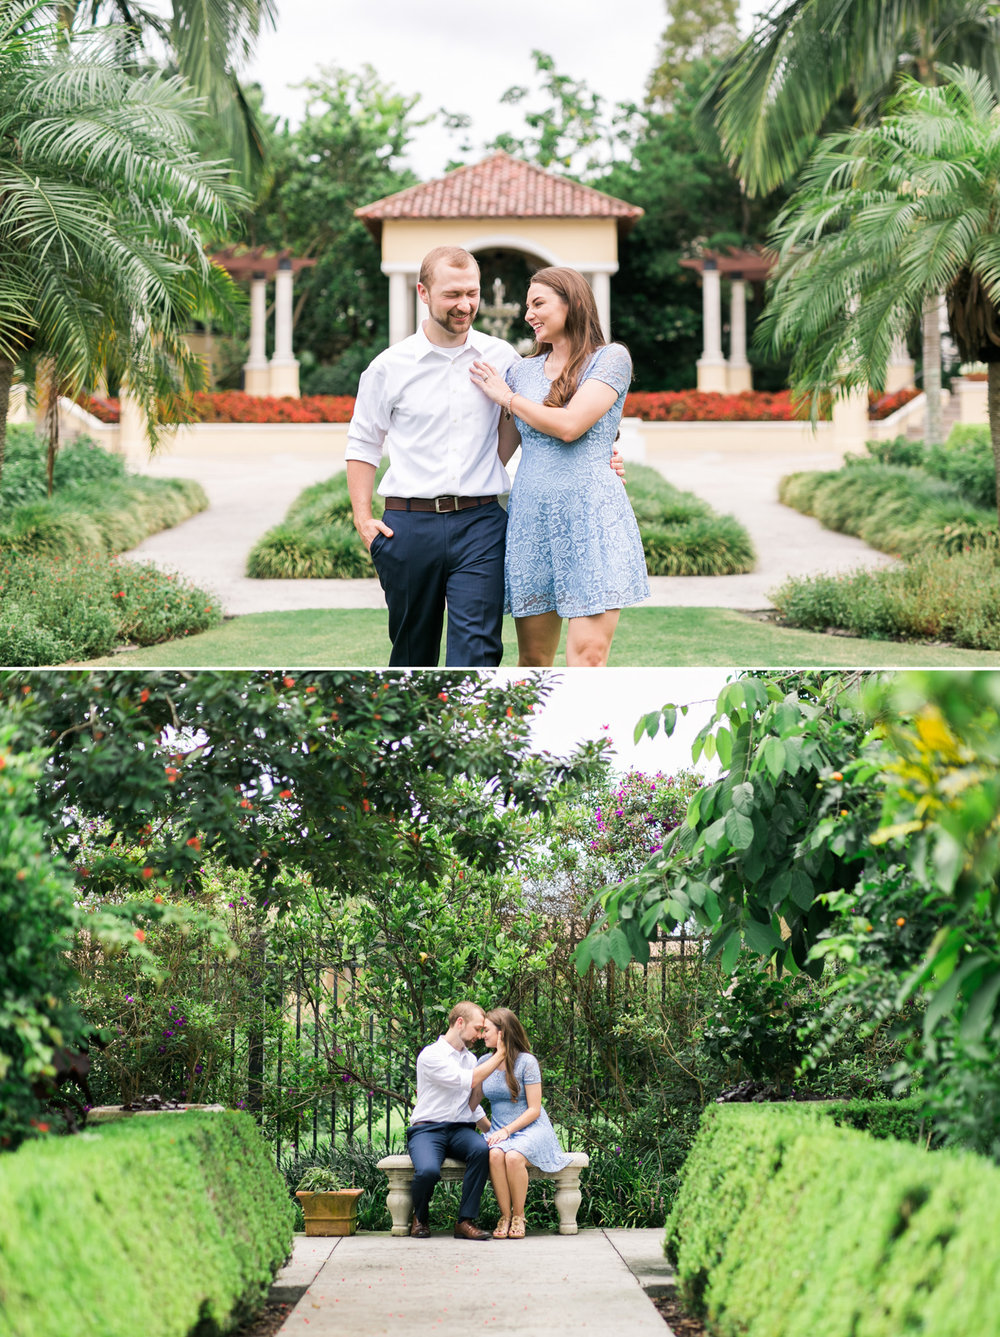 hollis-gardens-lakeland-fl-engagement-6.jpg